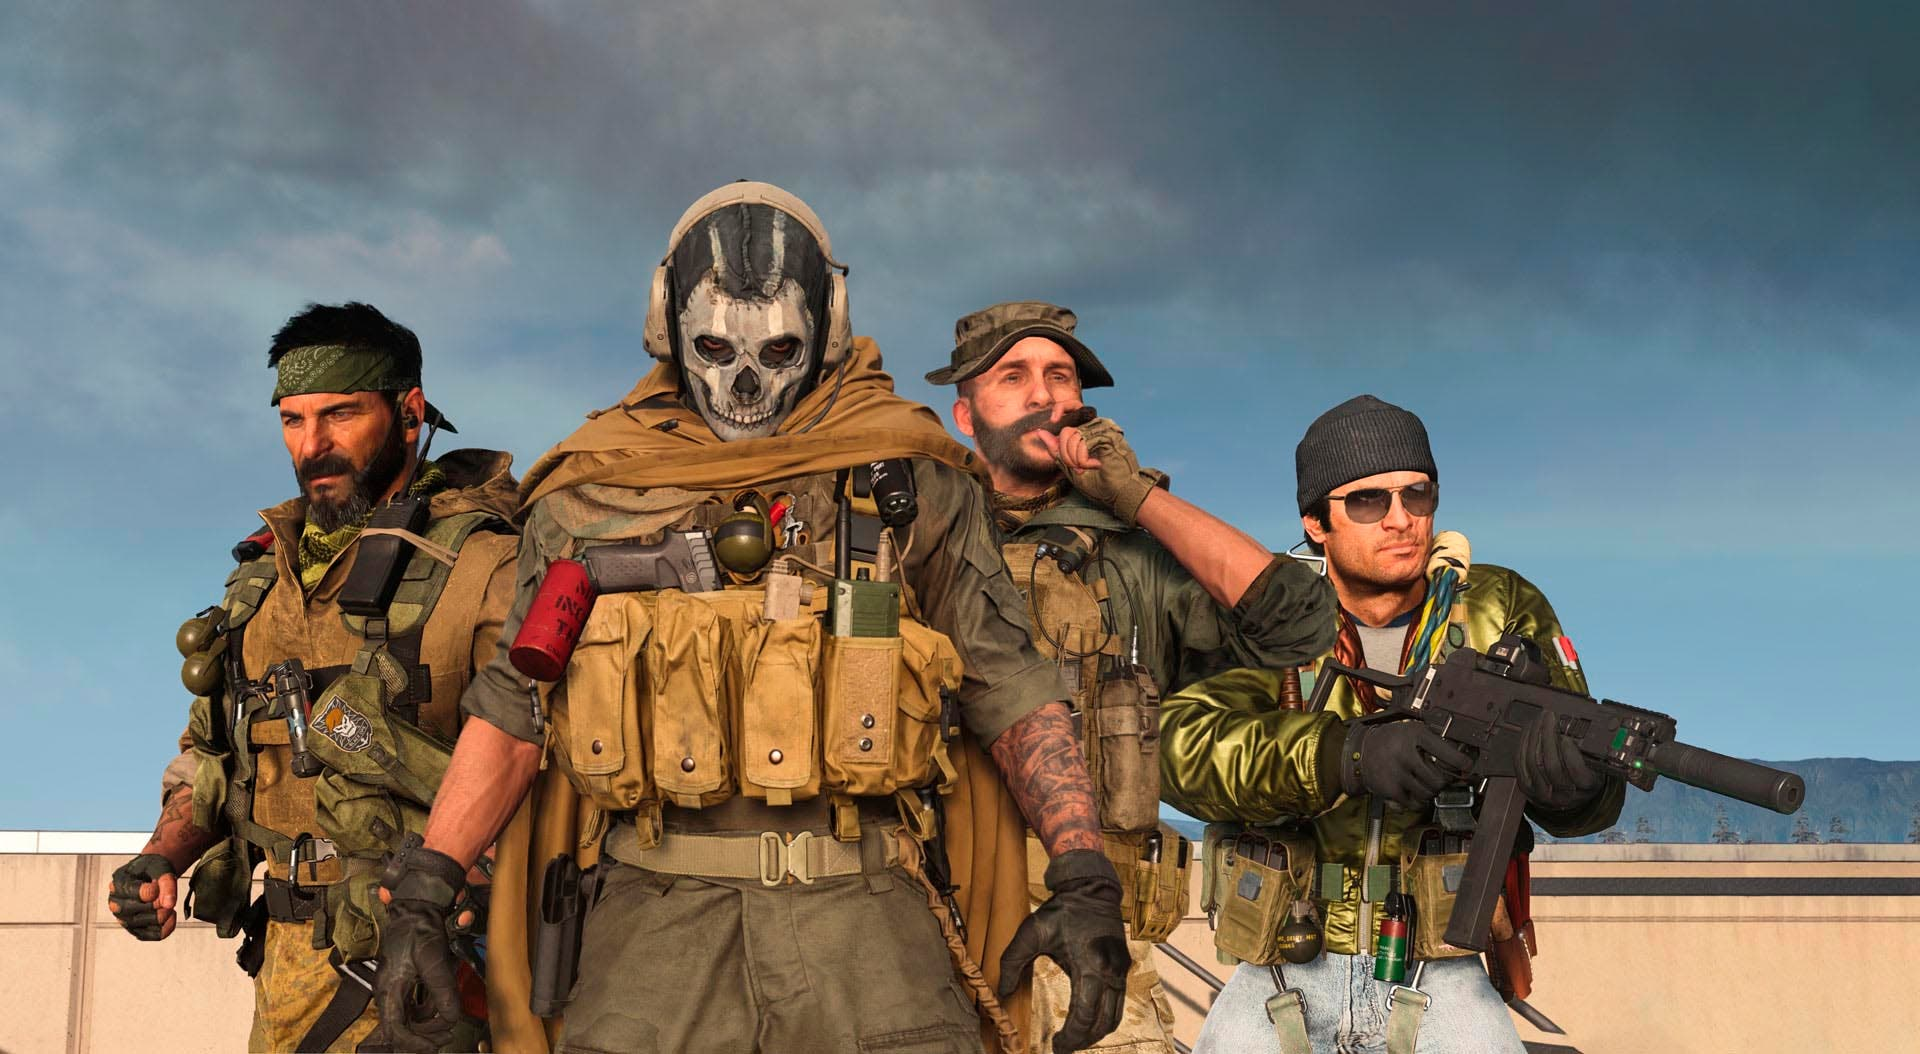 La primera temporada de Call of Duty: Black Ops Cold War ve retrasado su lanzamiento 6